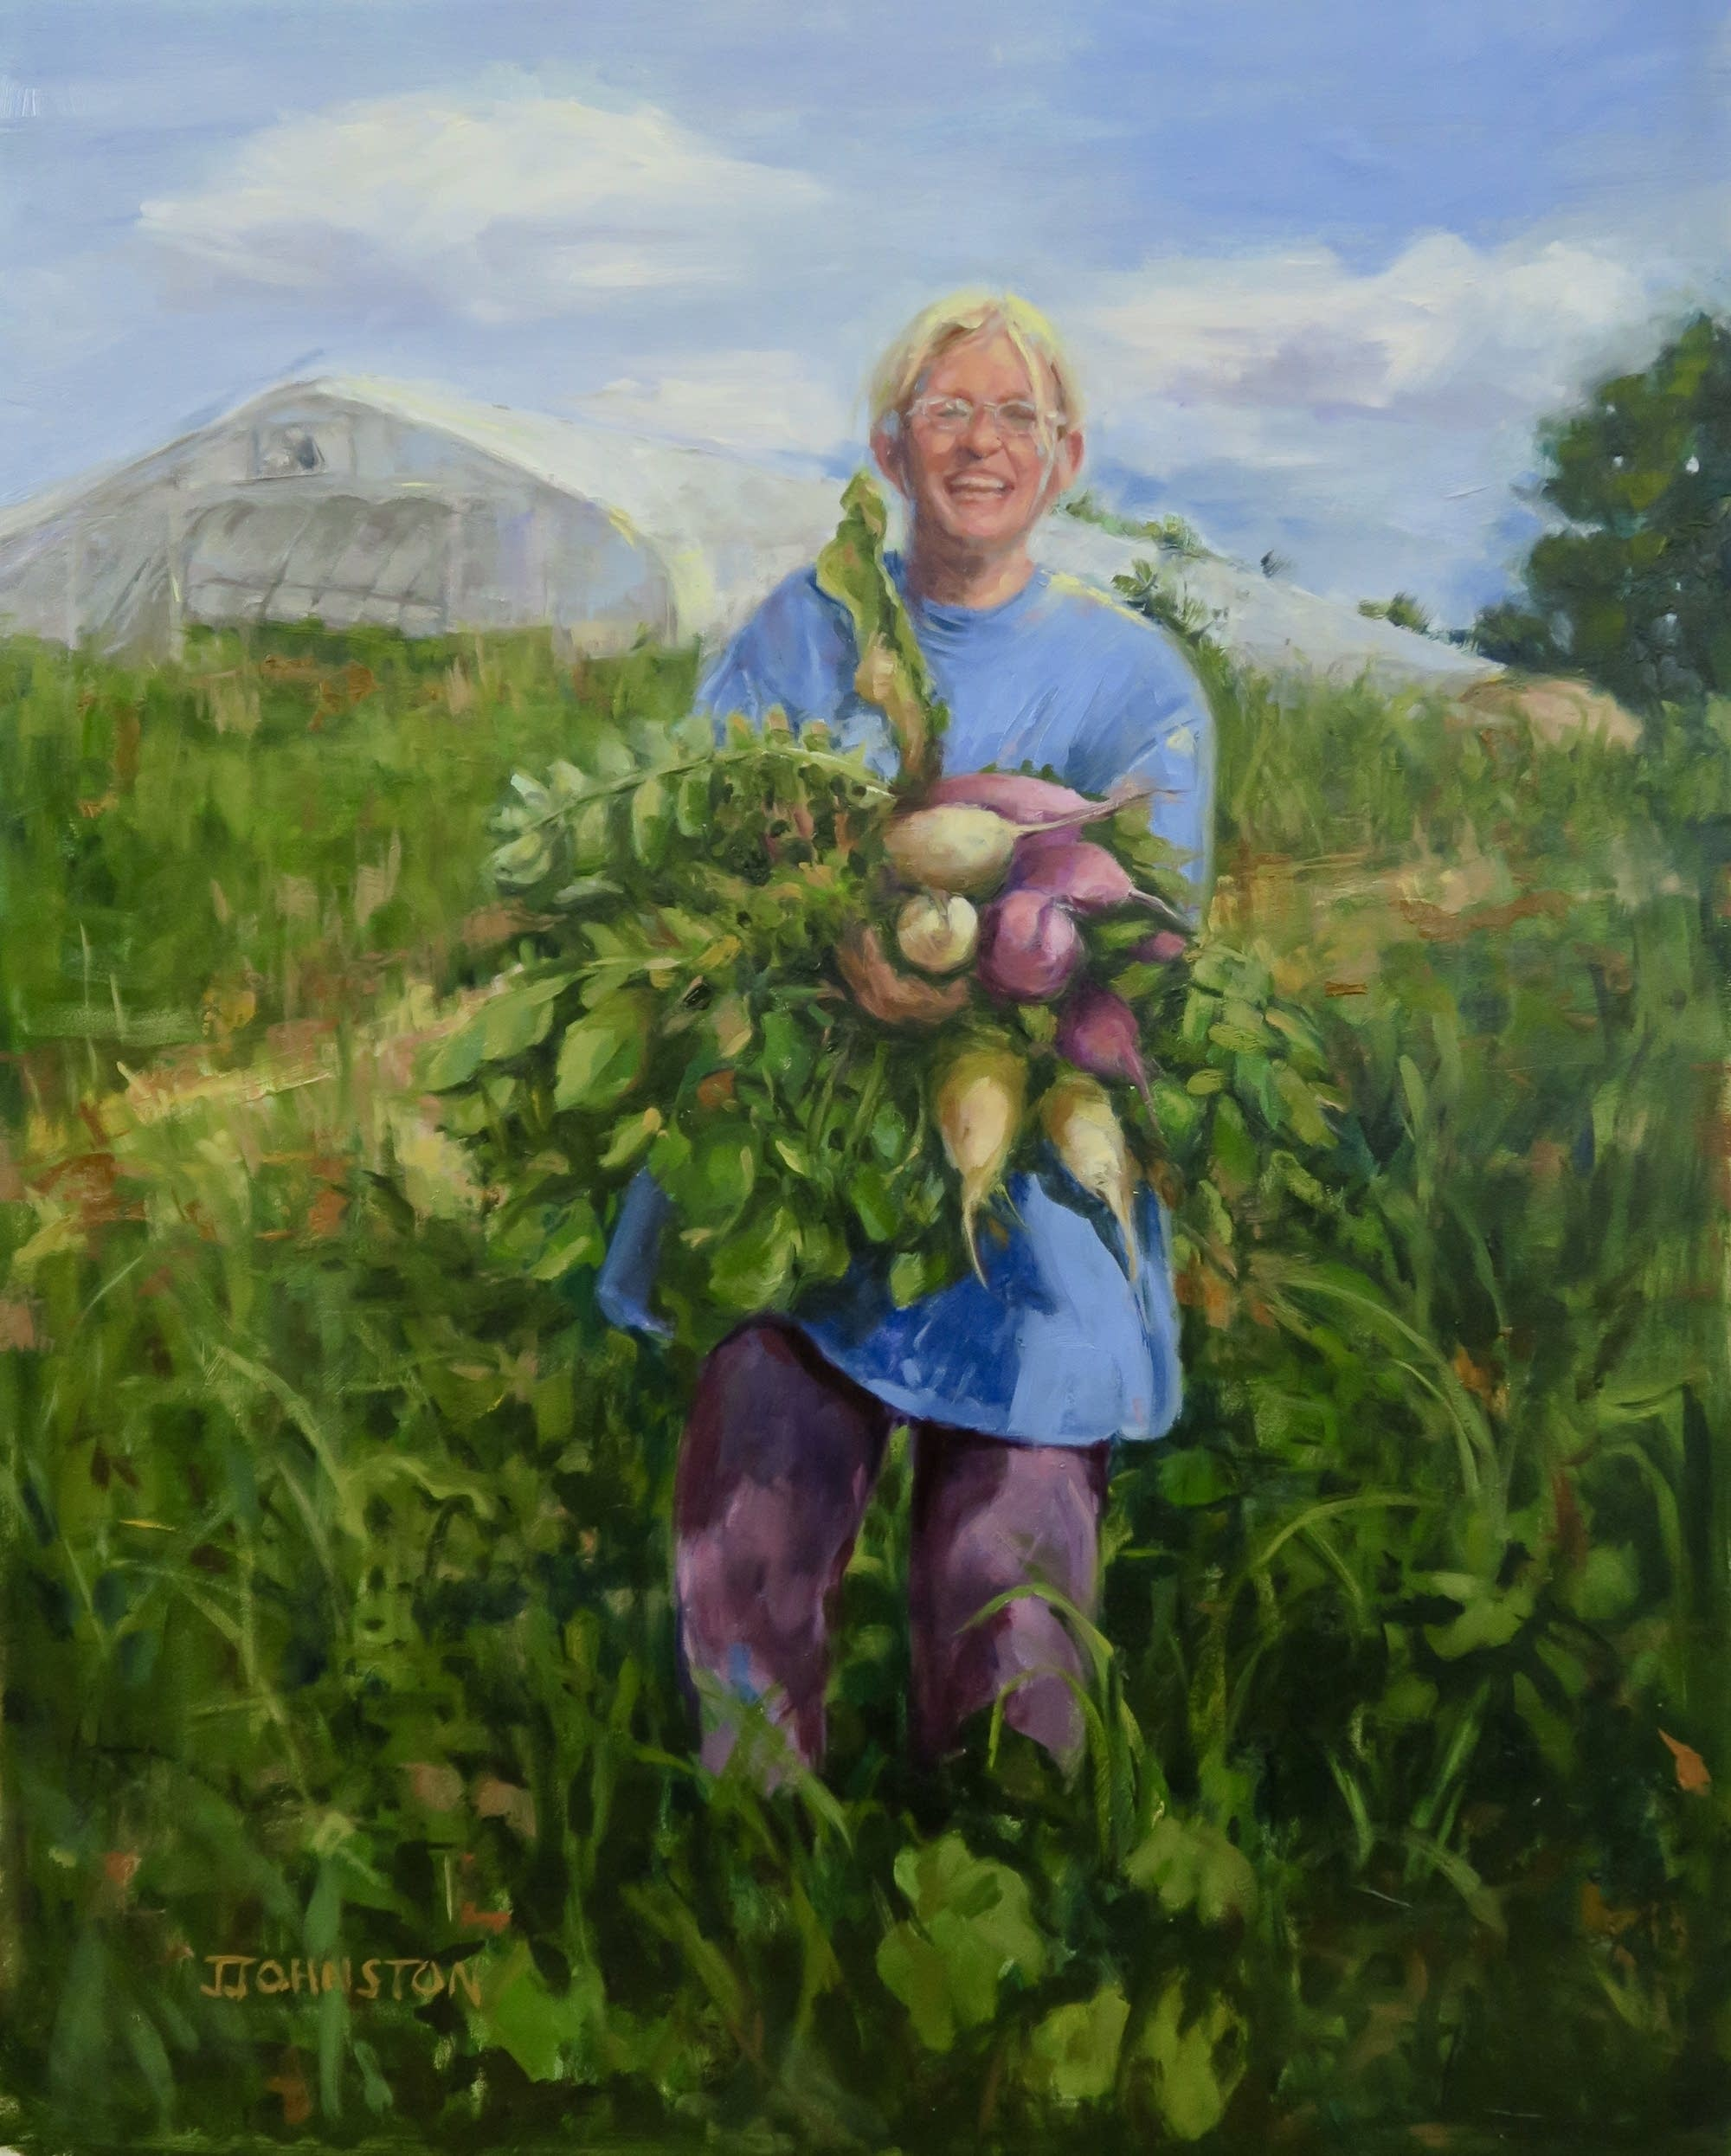 Painter Julie Johnston depicts the strength of female farmers.